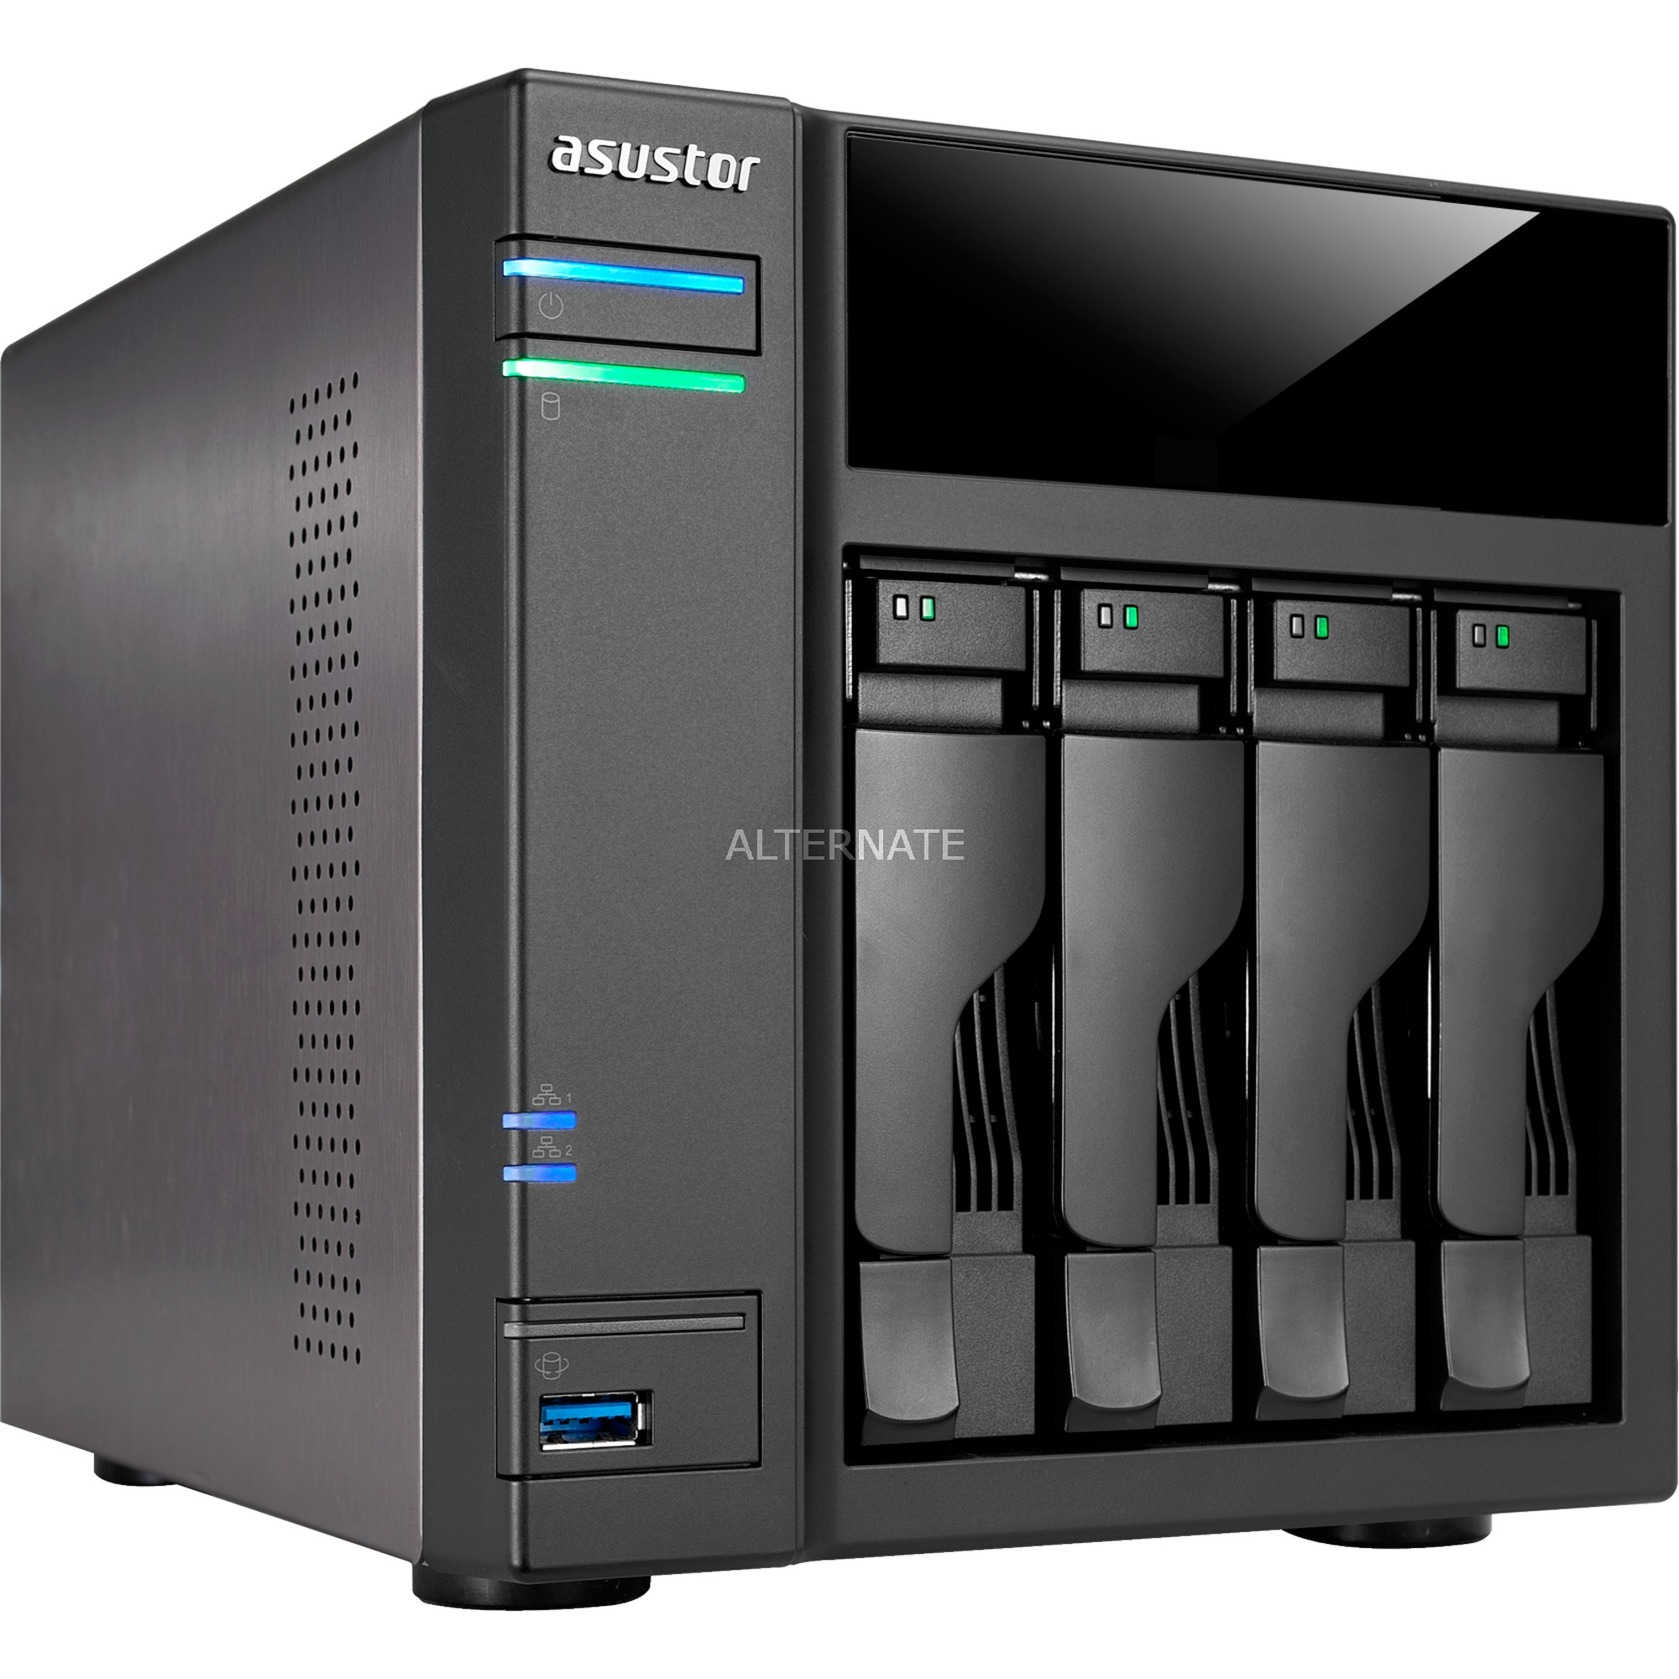 AS6104T Ethernet Negro NAS